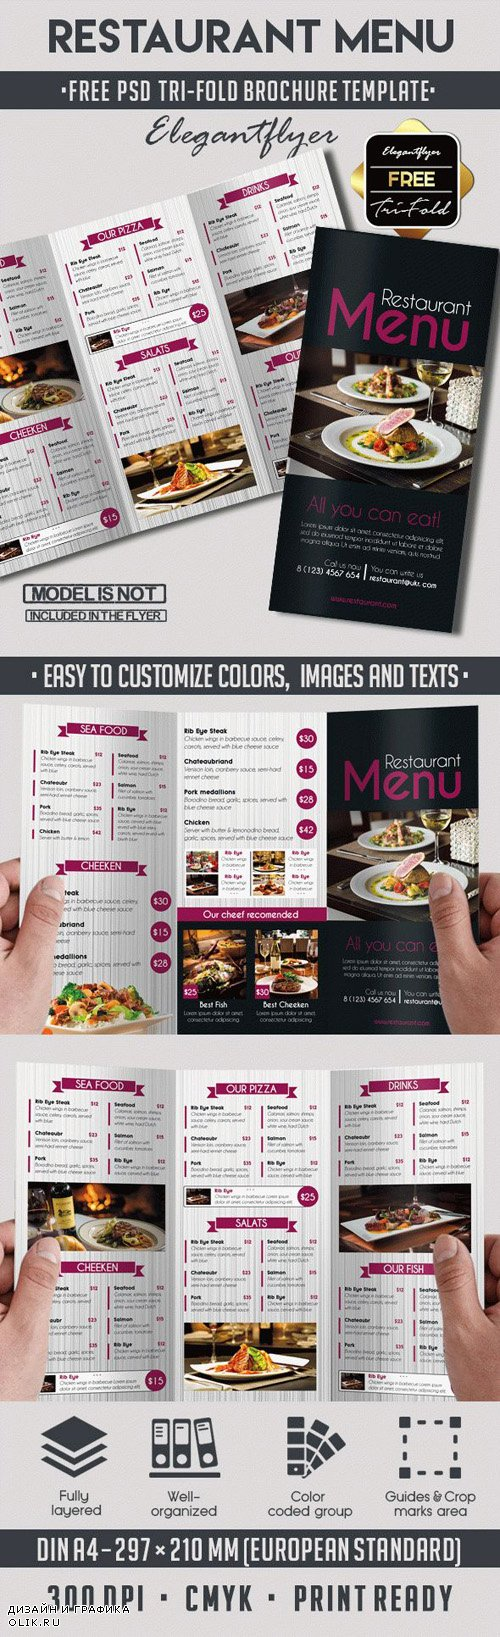 Restaurant Menu - PSD Tri-Fold Brochure Template